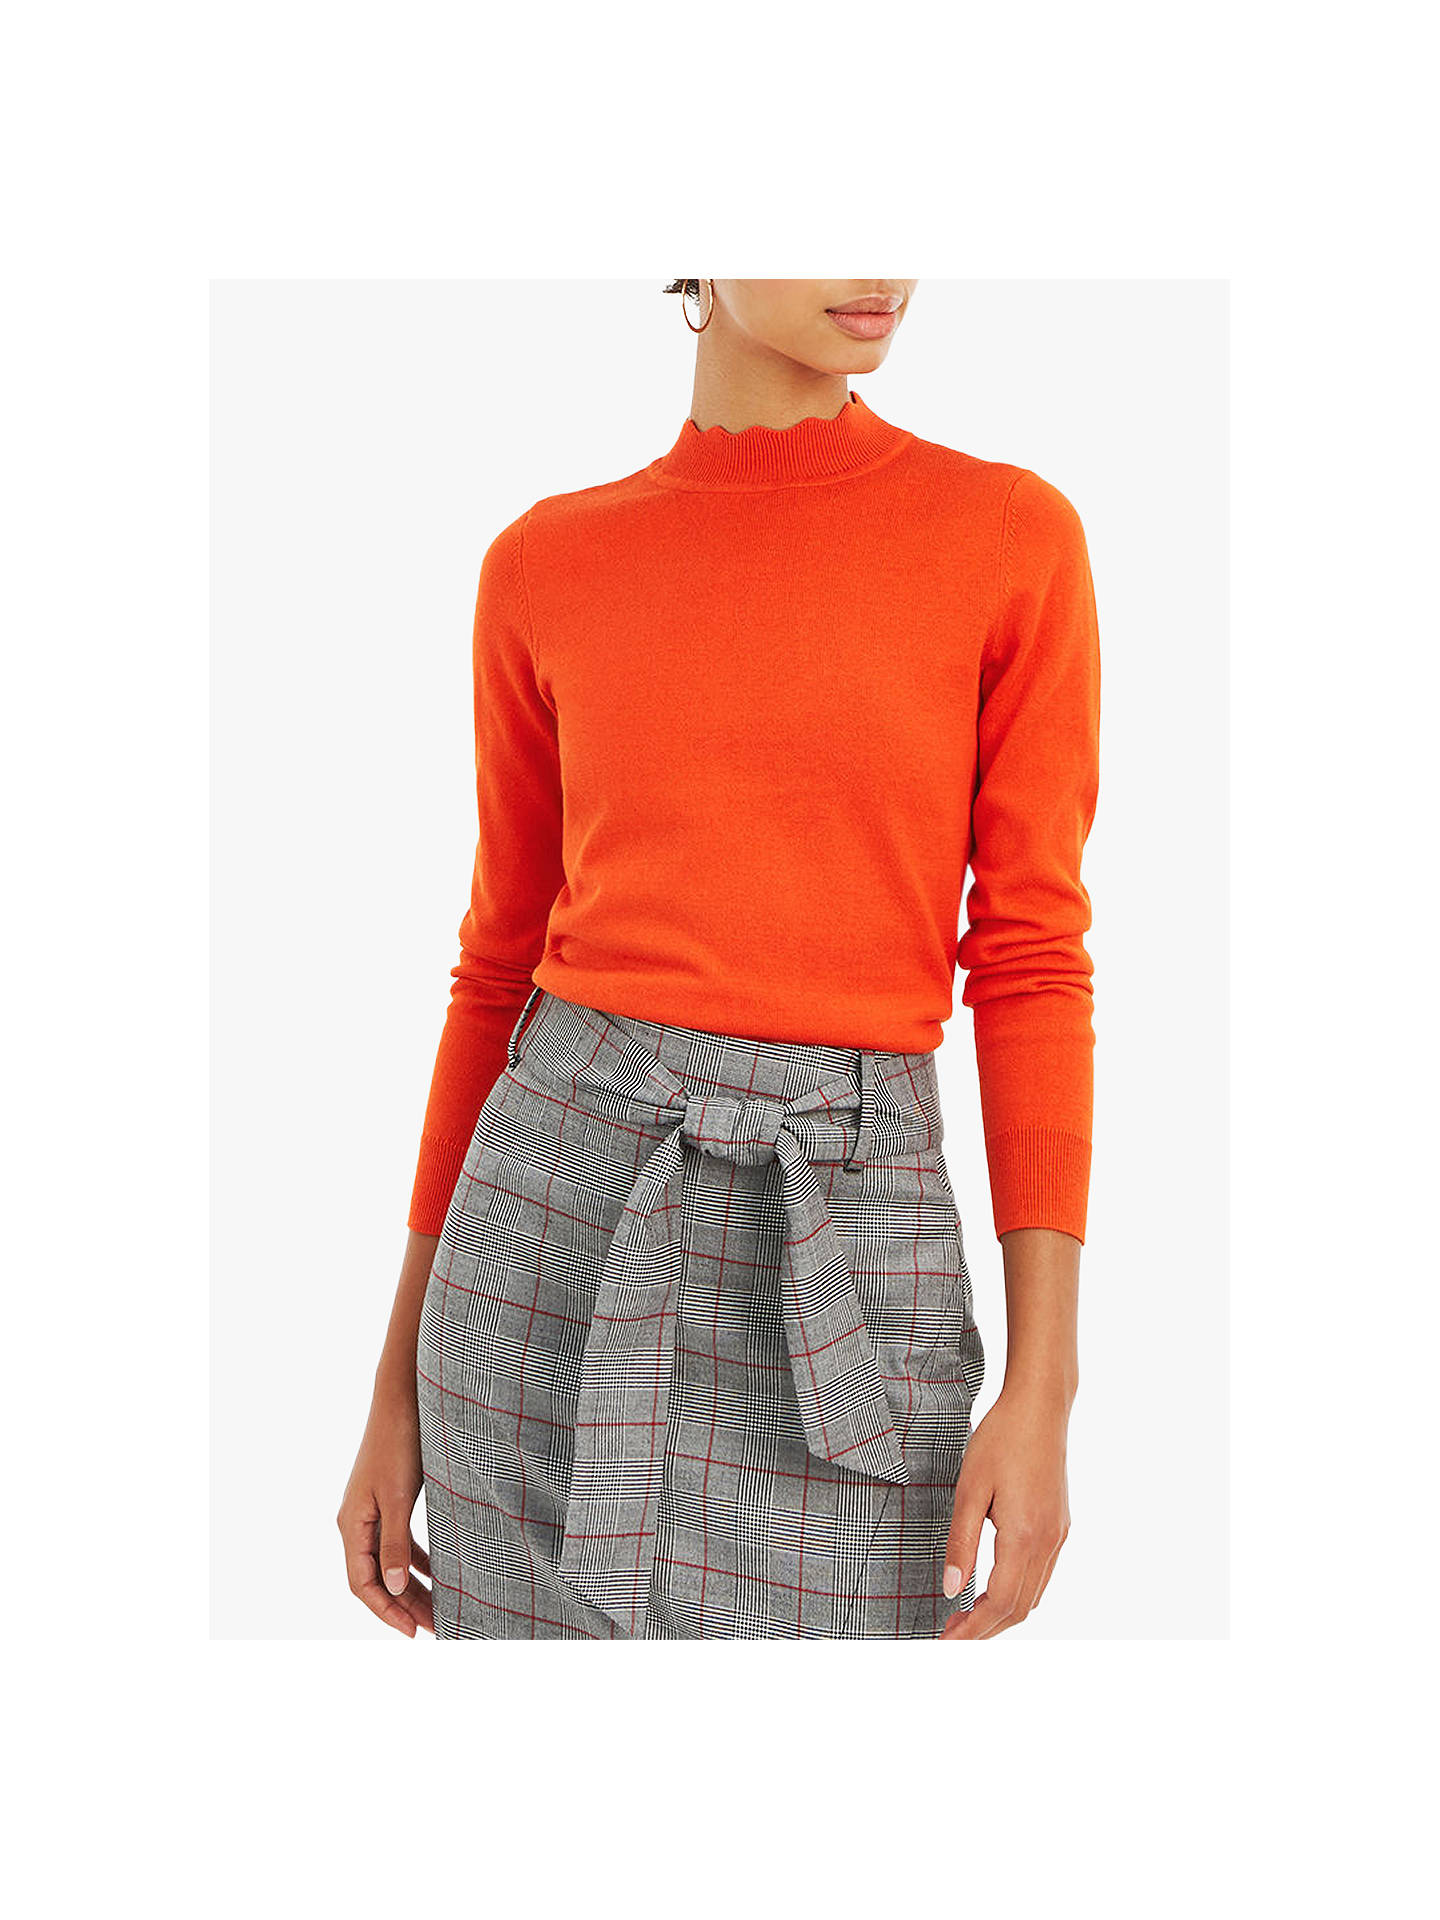 BuyOasis Scallop Turtle Neck Jumper, Orange, S Online at johnlewis.com